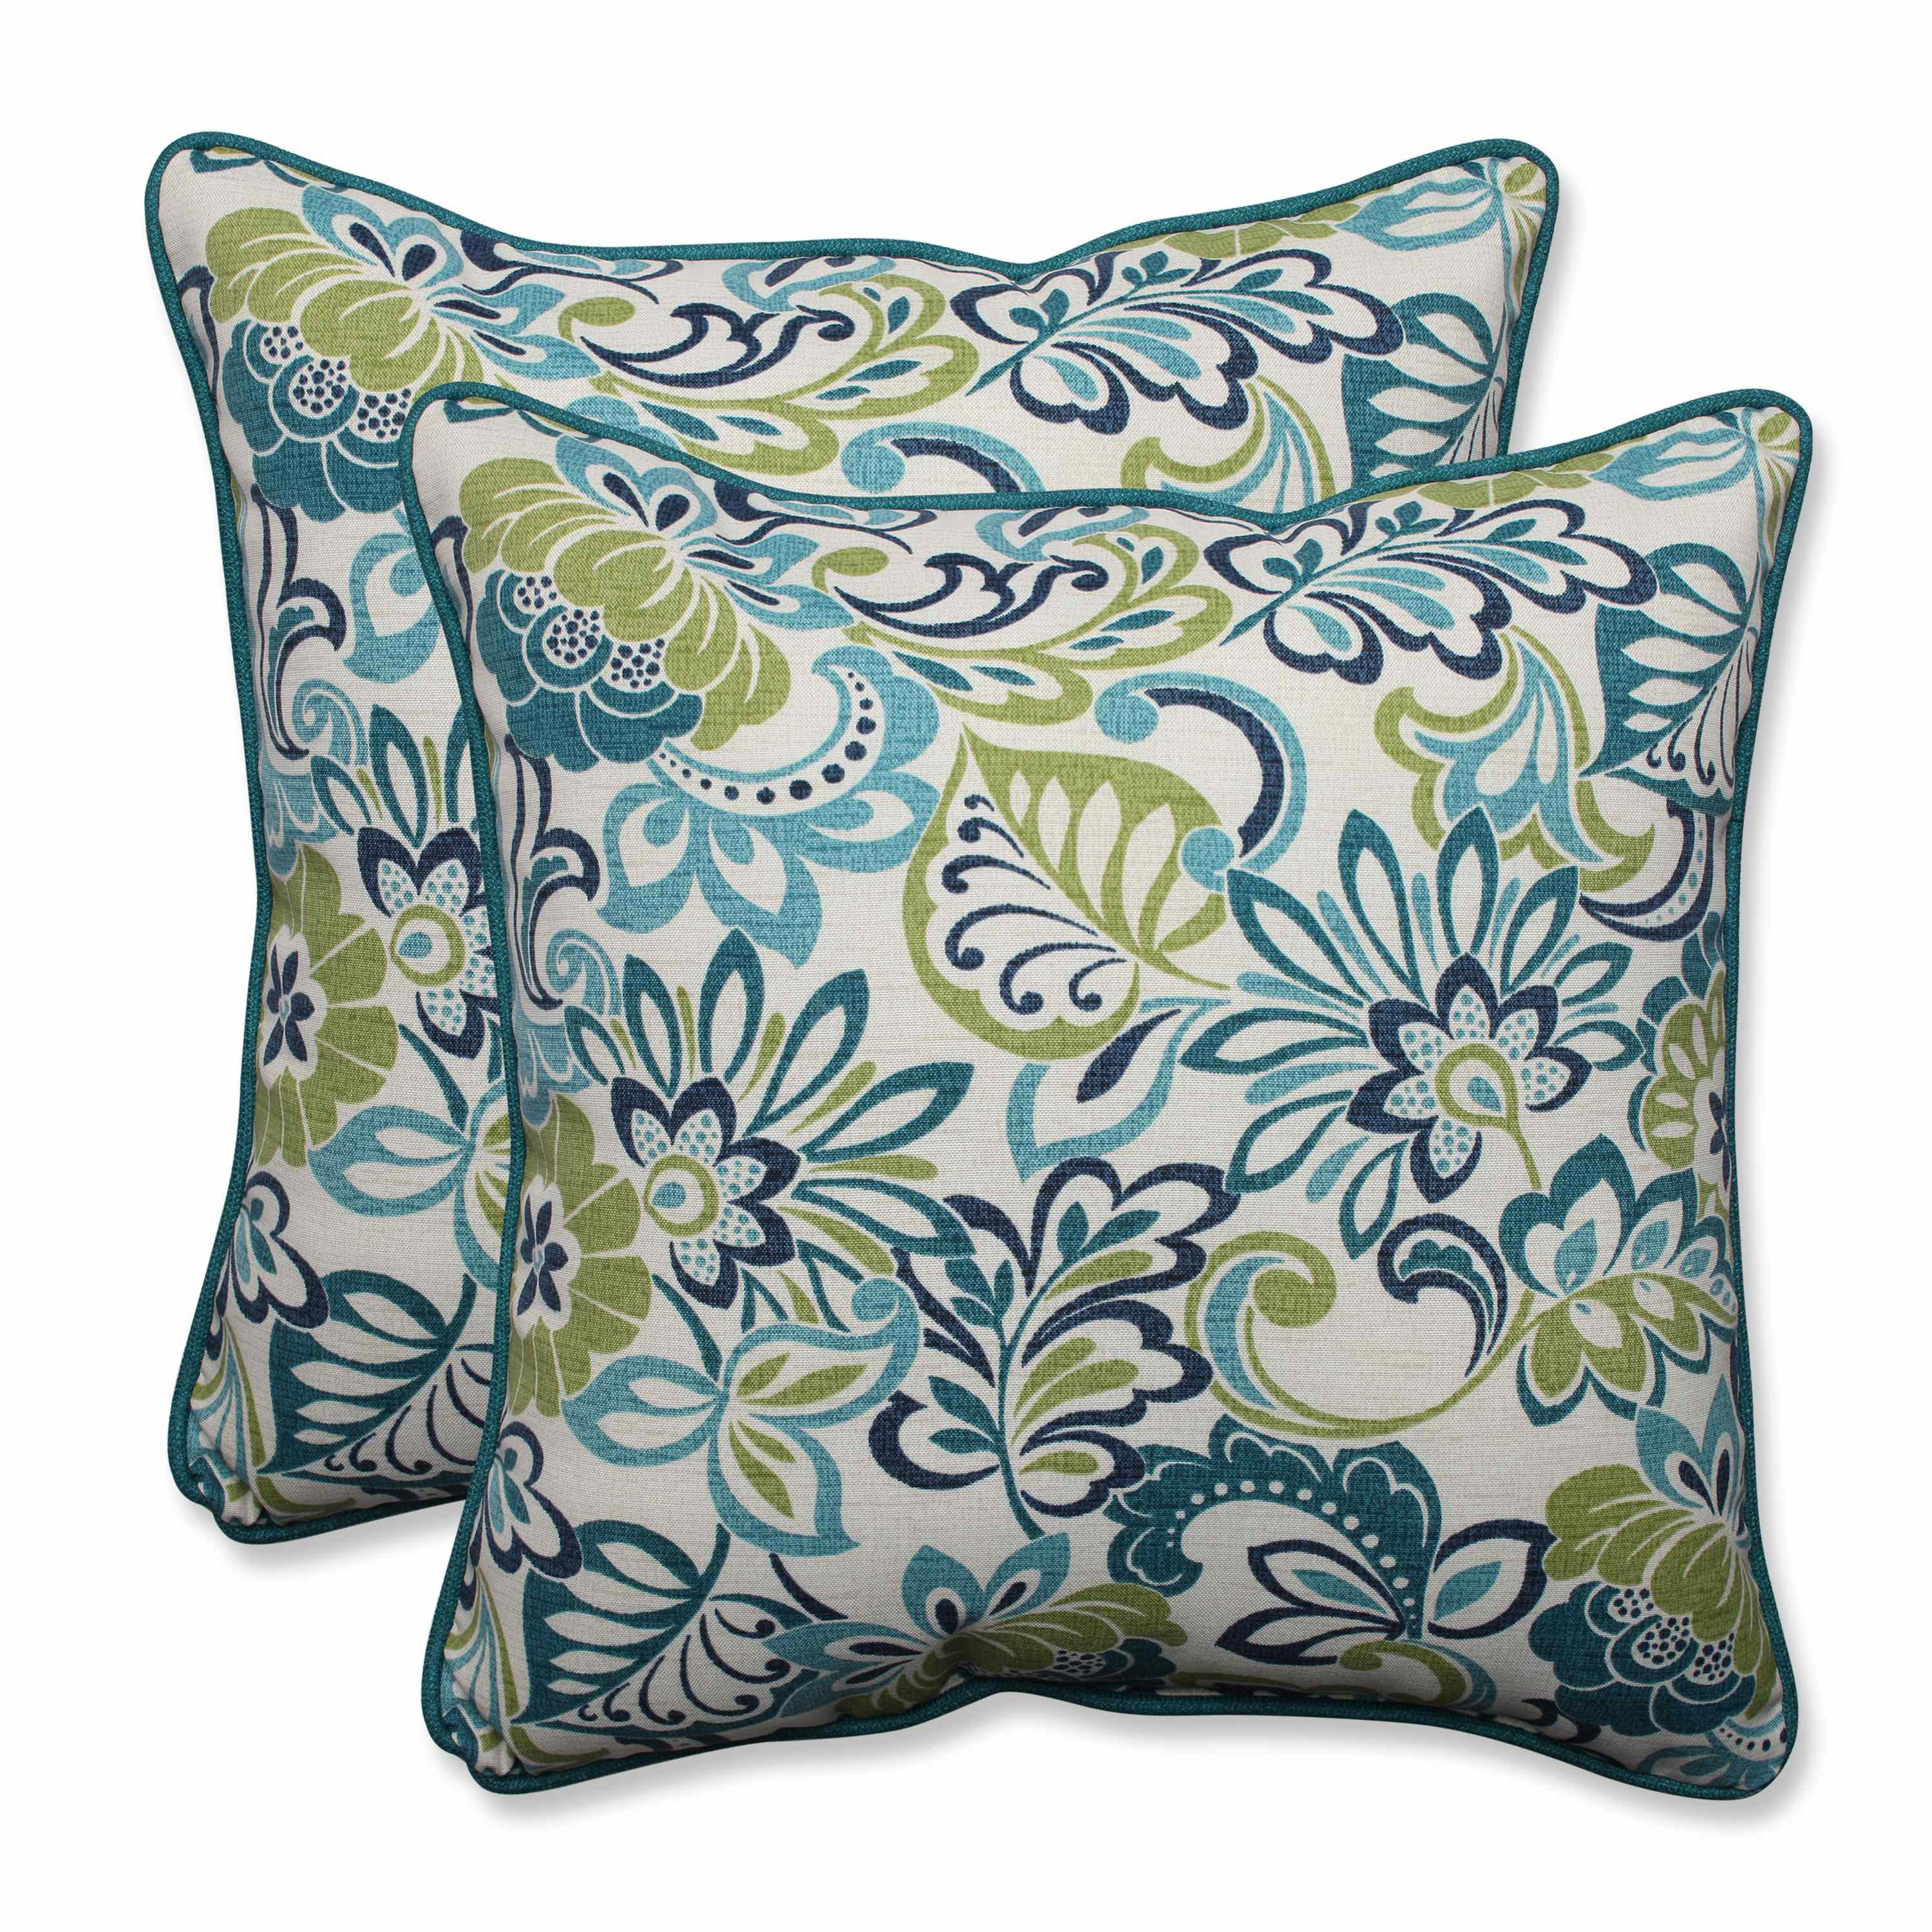 Captivating outdoor throw pillows for furniture accessories with cheap outdoor throw pillows